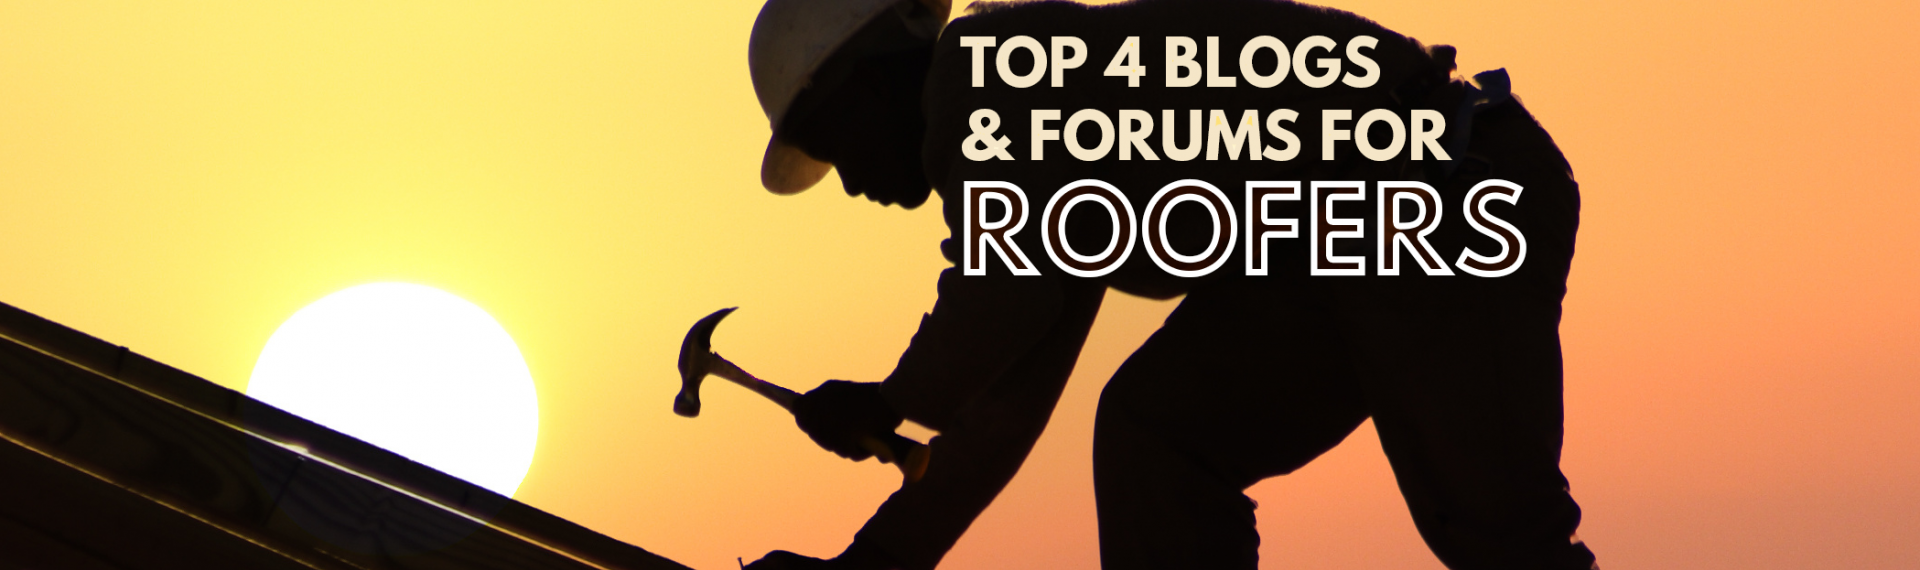 Getting Clued Up: The Top 4 Blogs & Forums Roofers Need To Know About